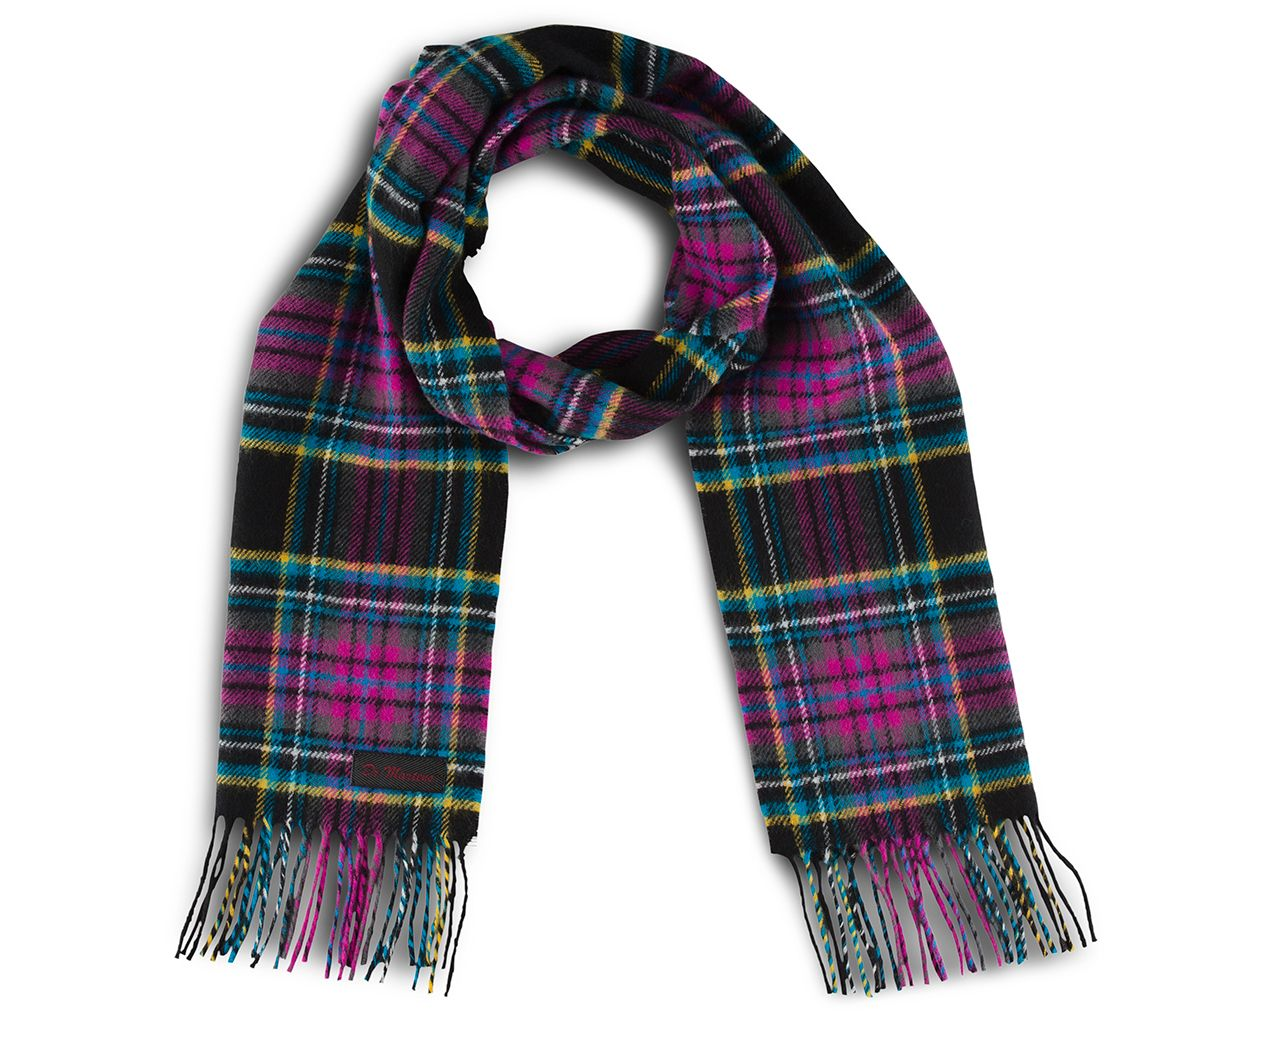 40 Dr Martens This Traditional Tartan Scarf Is Made In Scotland